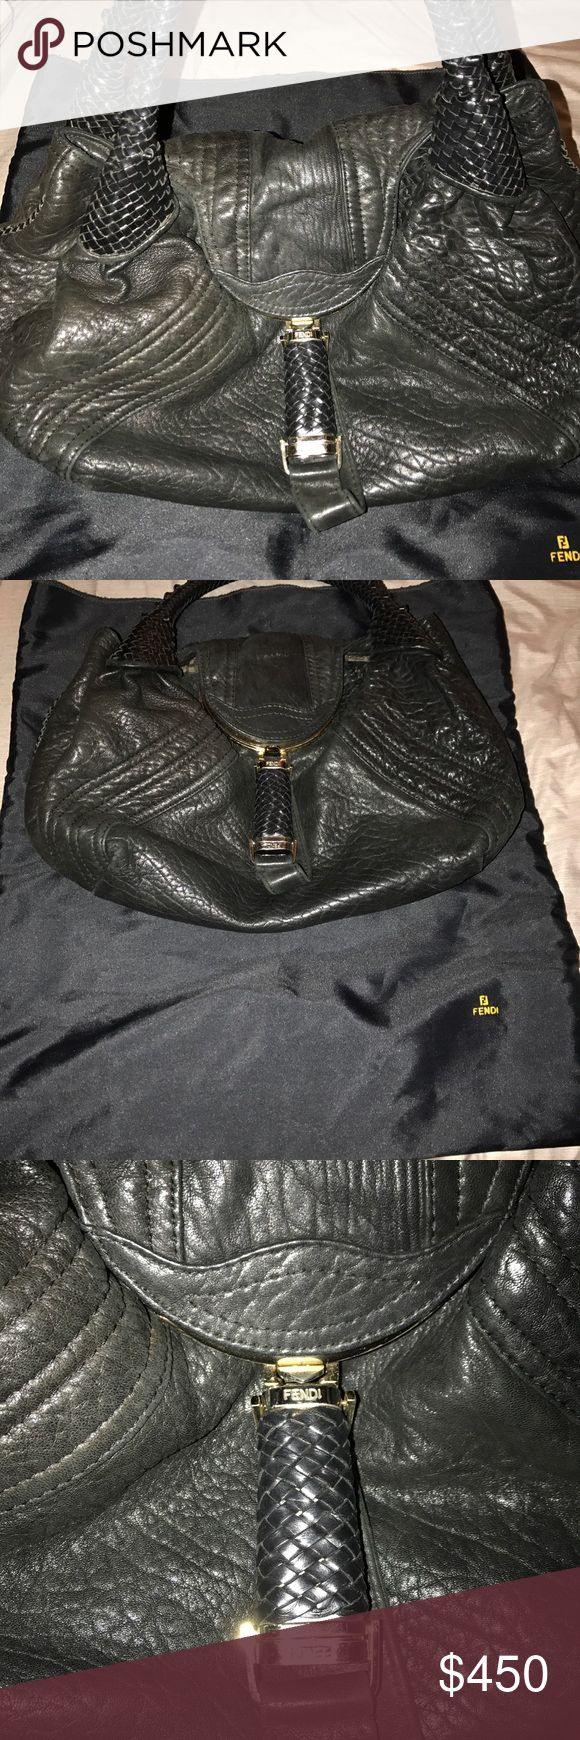 Fendi spy bag Blk nappa leather. Braided handles, classic fendi canvas interior Fendi Bags Satchels